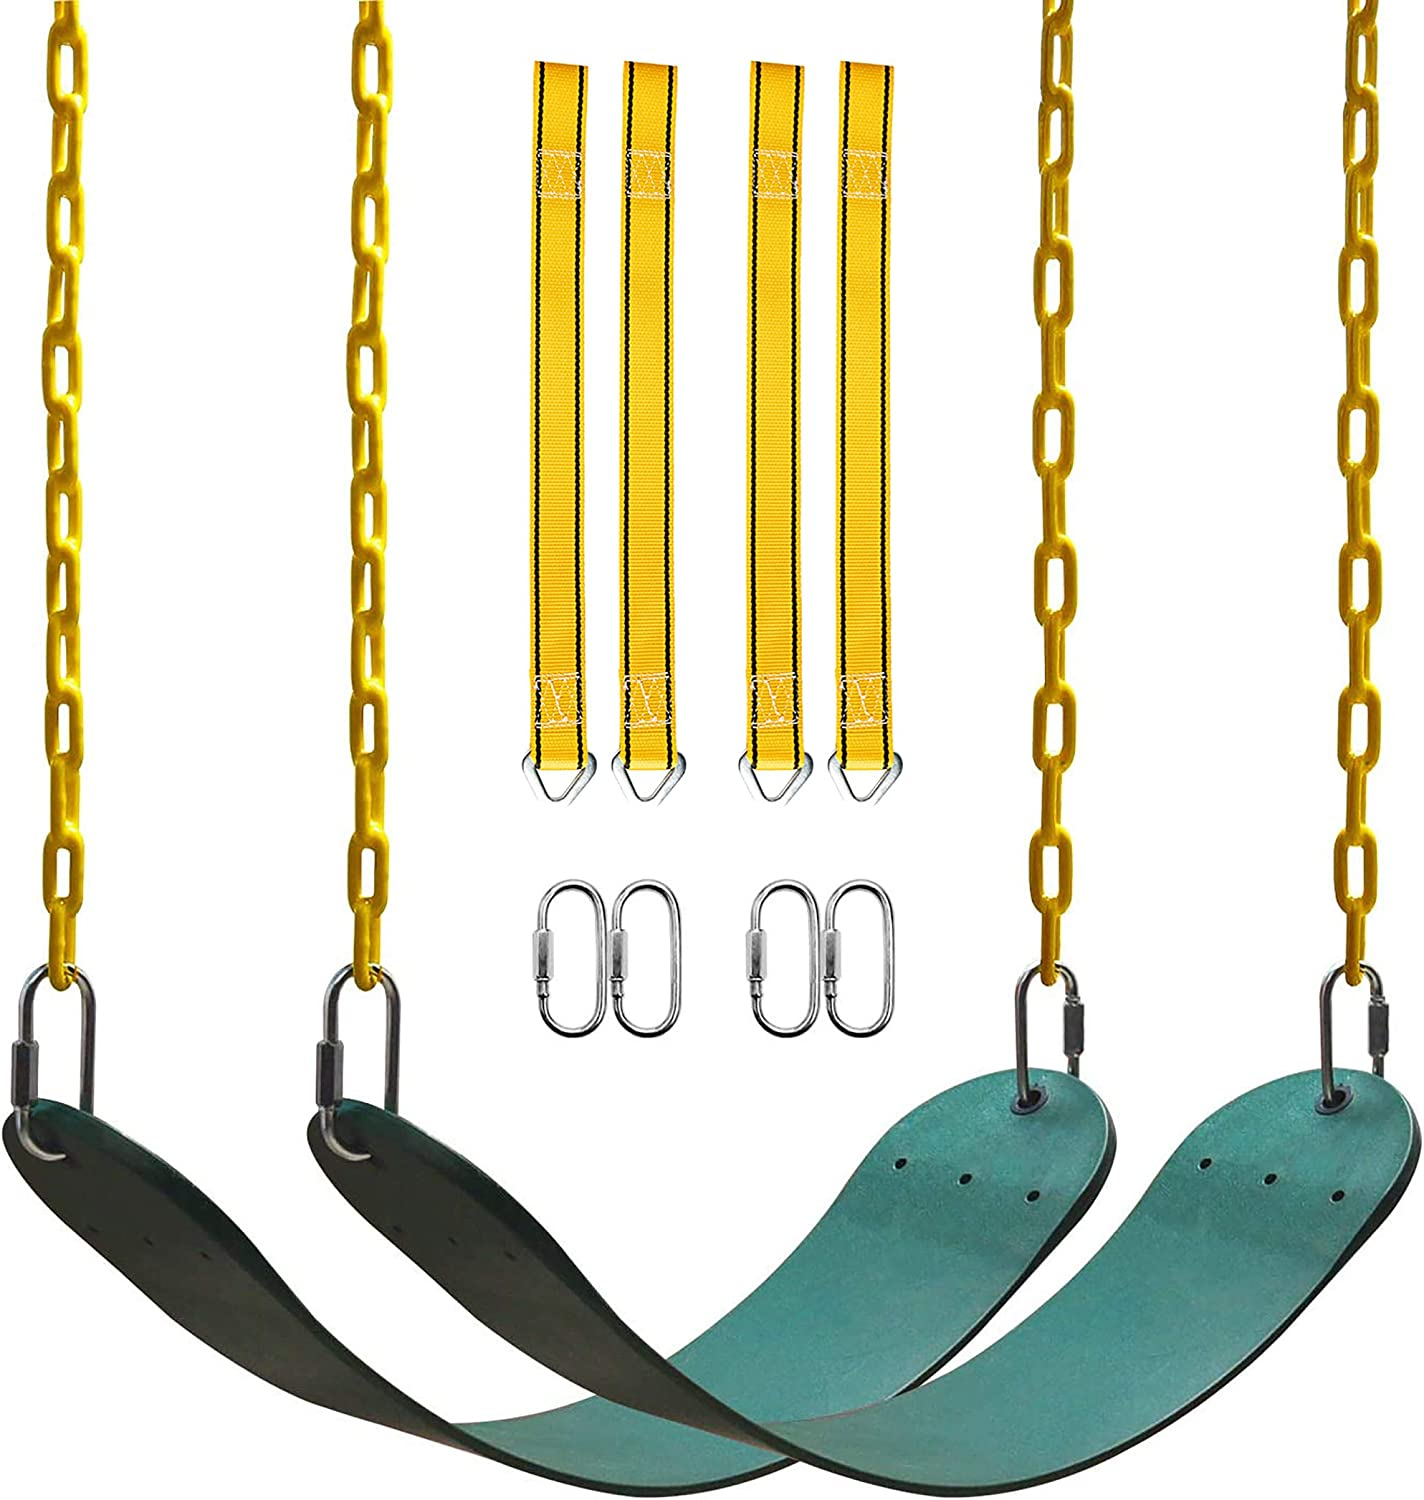 PACEARTH 2 Pack Swings Seats Holds 660lbs with 68.9 inch Anti-Rust Chains Plastic Coated 23.6 inch Tree Hanging Straps and Locking Buckles Playground Swing Set Accessories Replacement Pink and Red